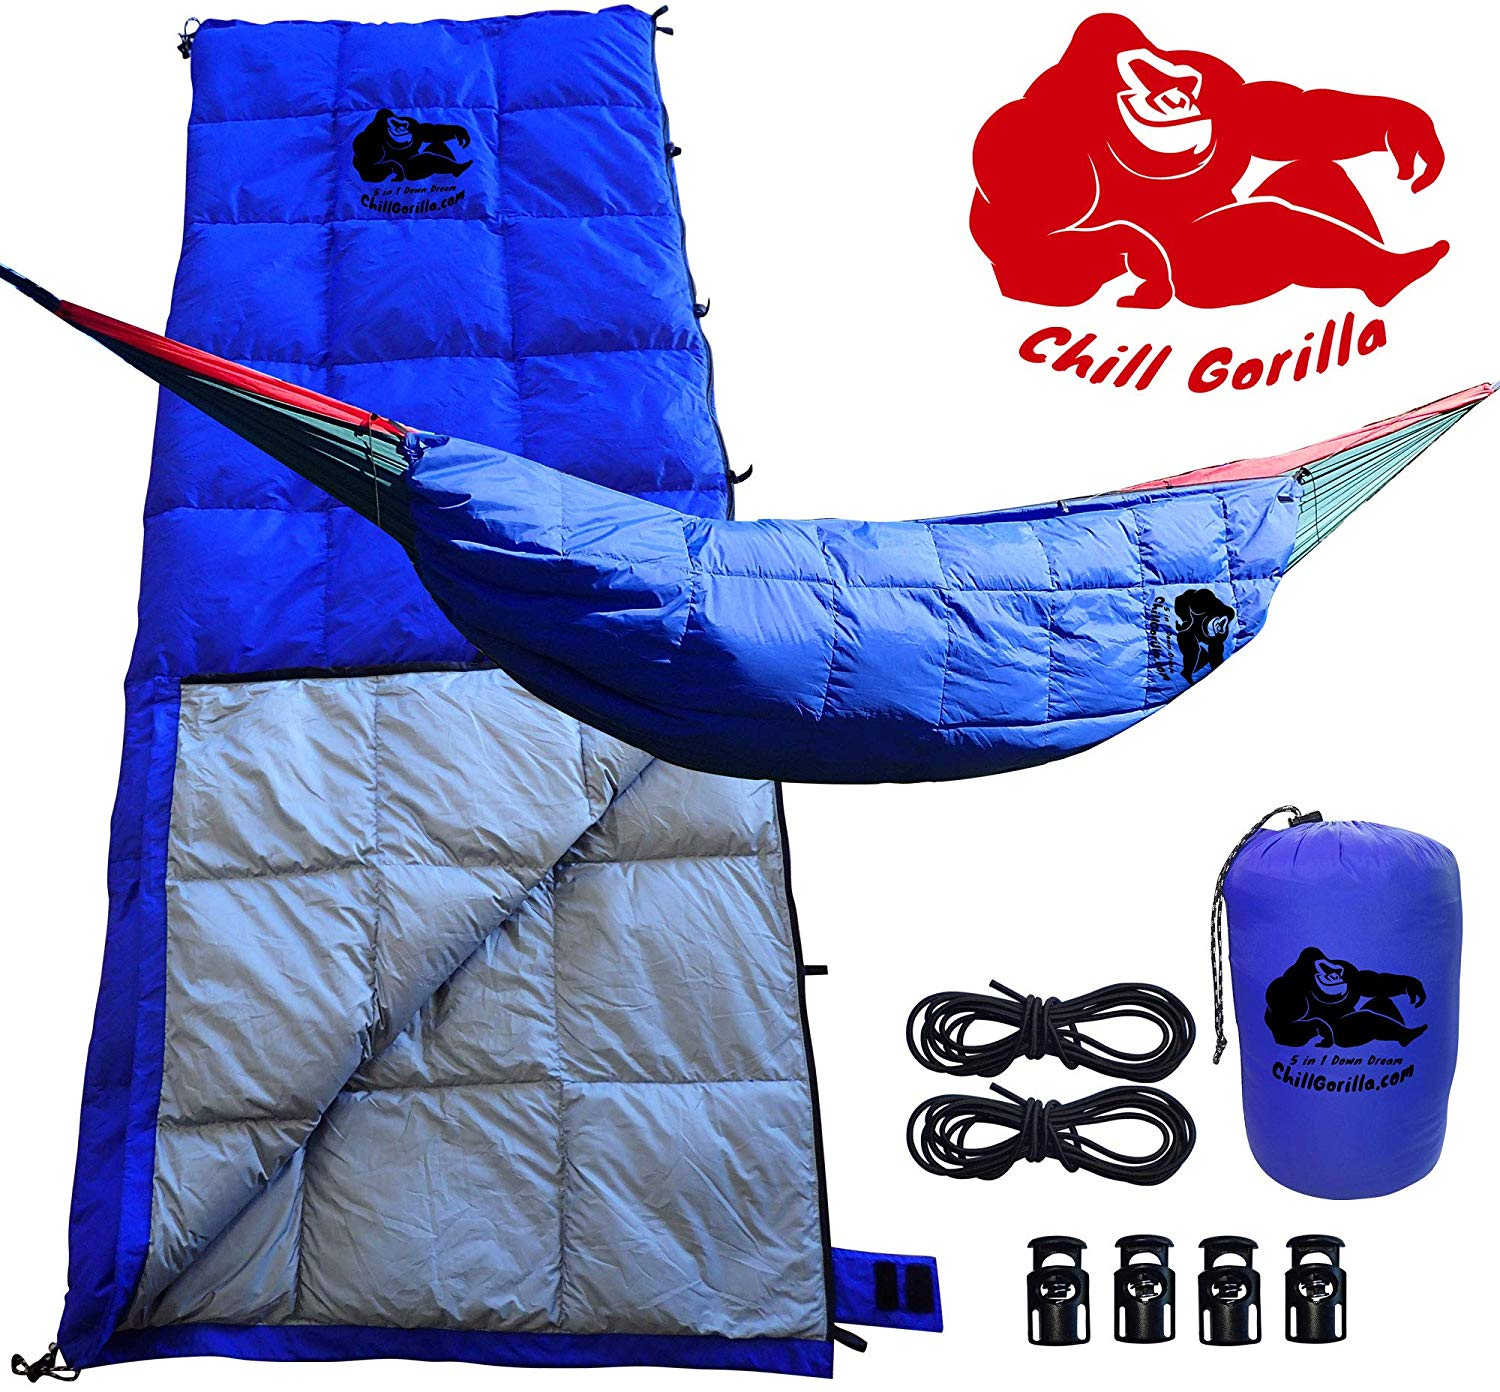 Chill Gorilla 30°F Down UNDERQUILT, Sleeping Bag | Outdoor vitals underquilt